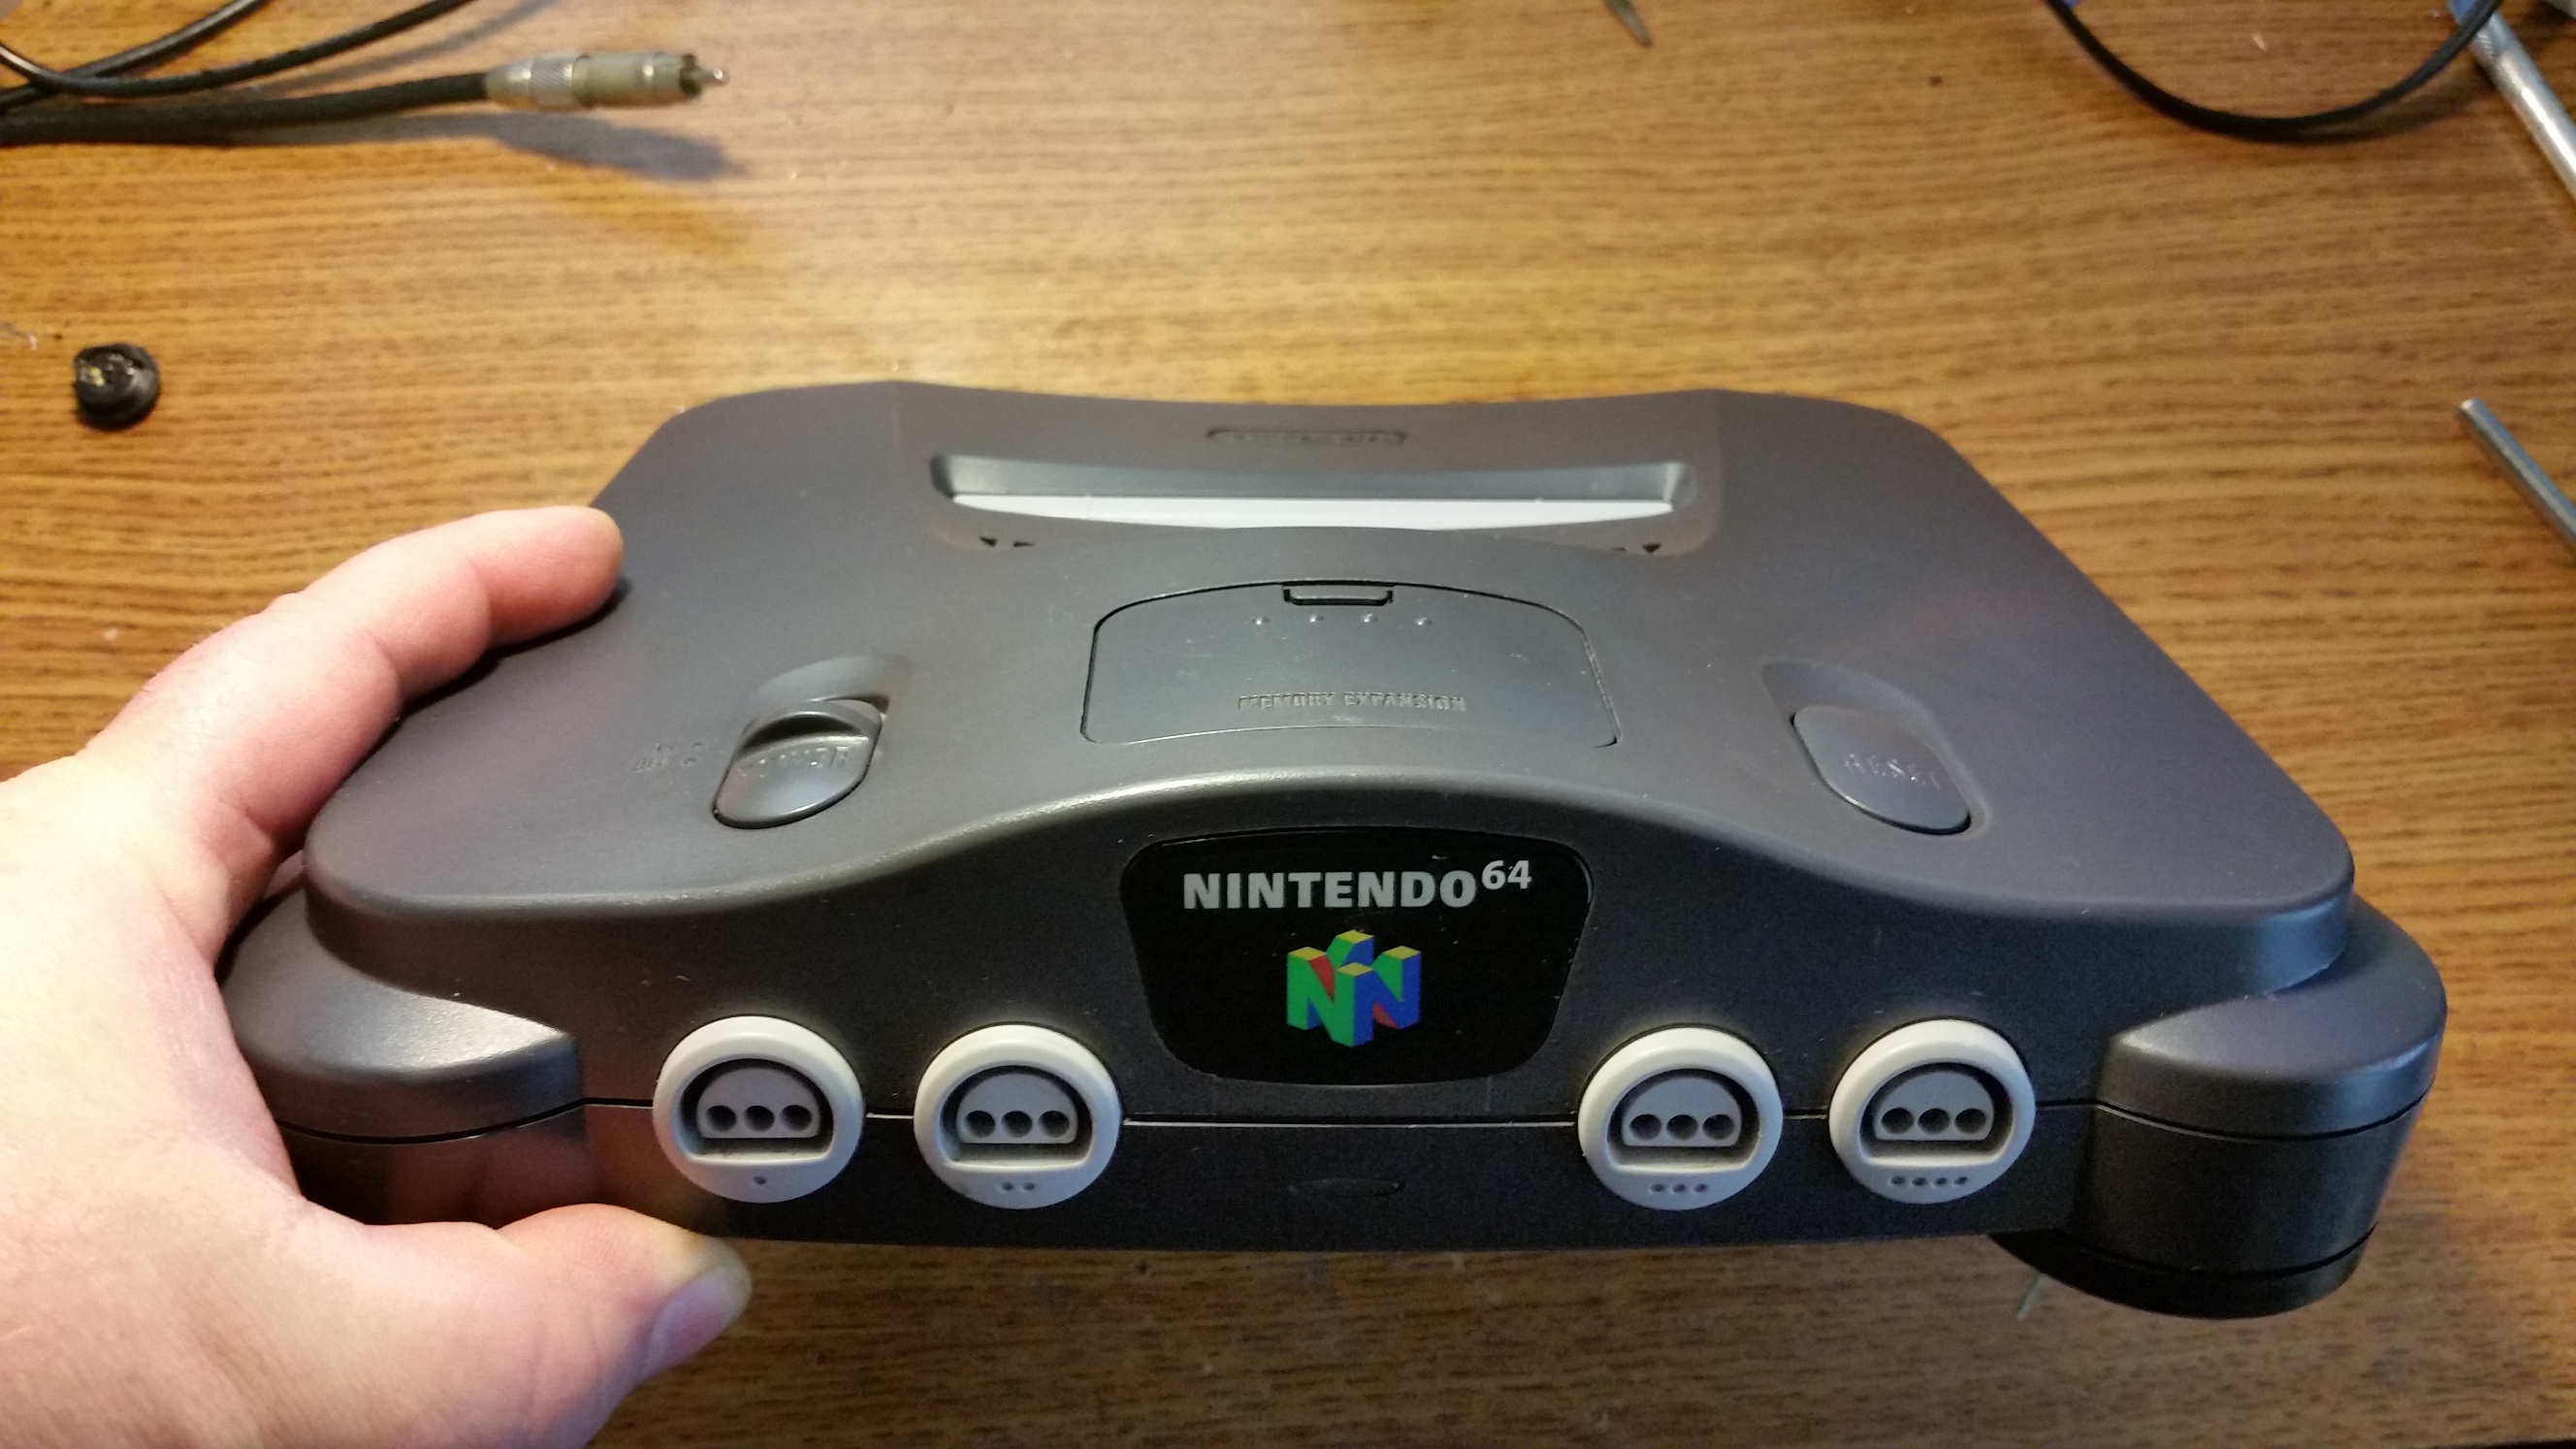 SOLD* RGB modded NES and N64 consoles for Christmas - Buy, Sell, and ...